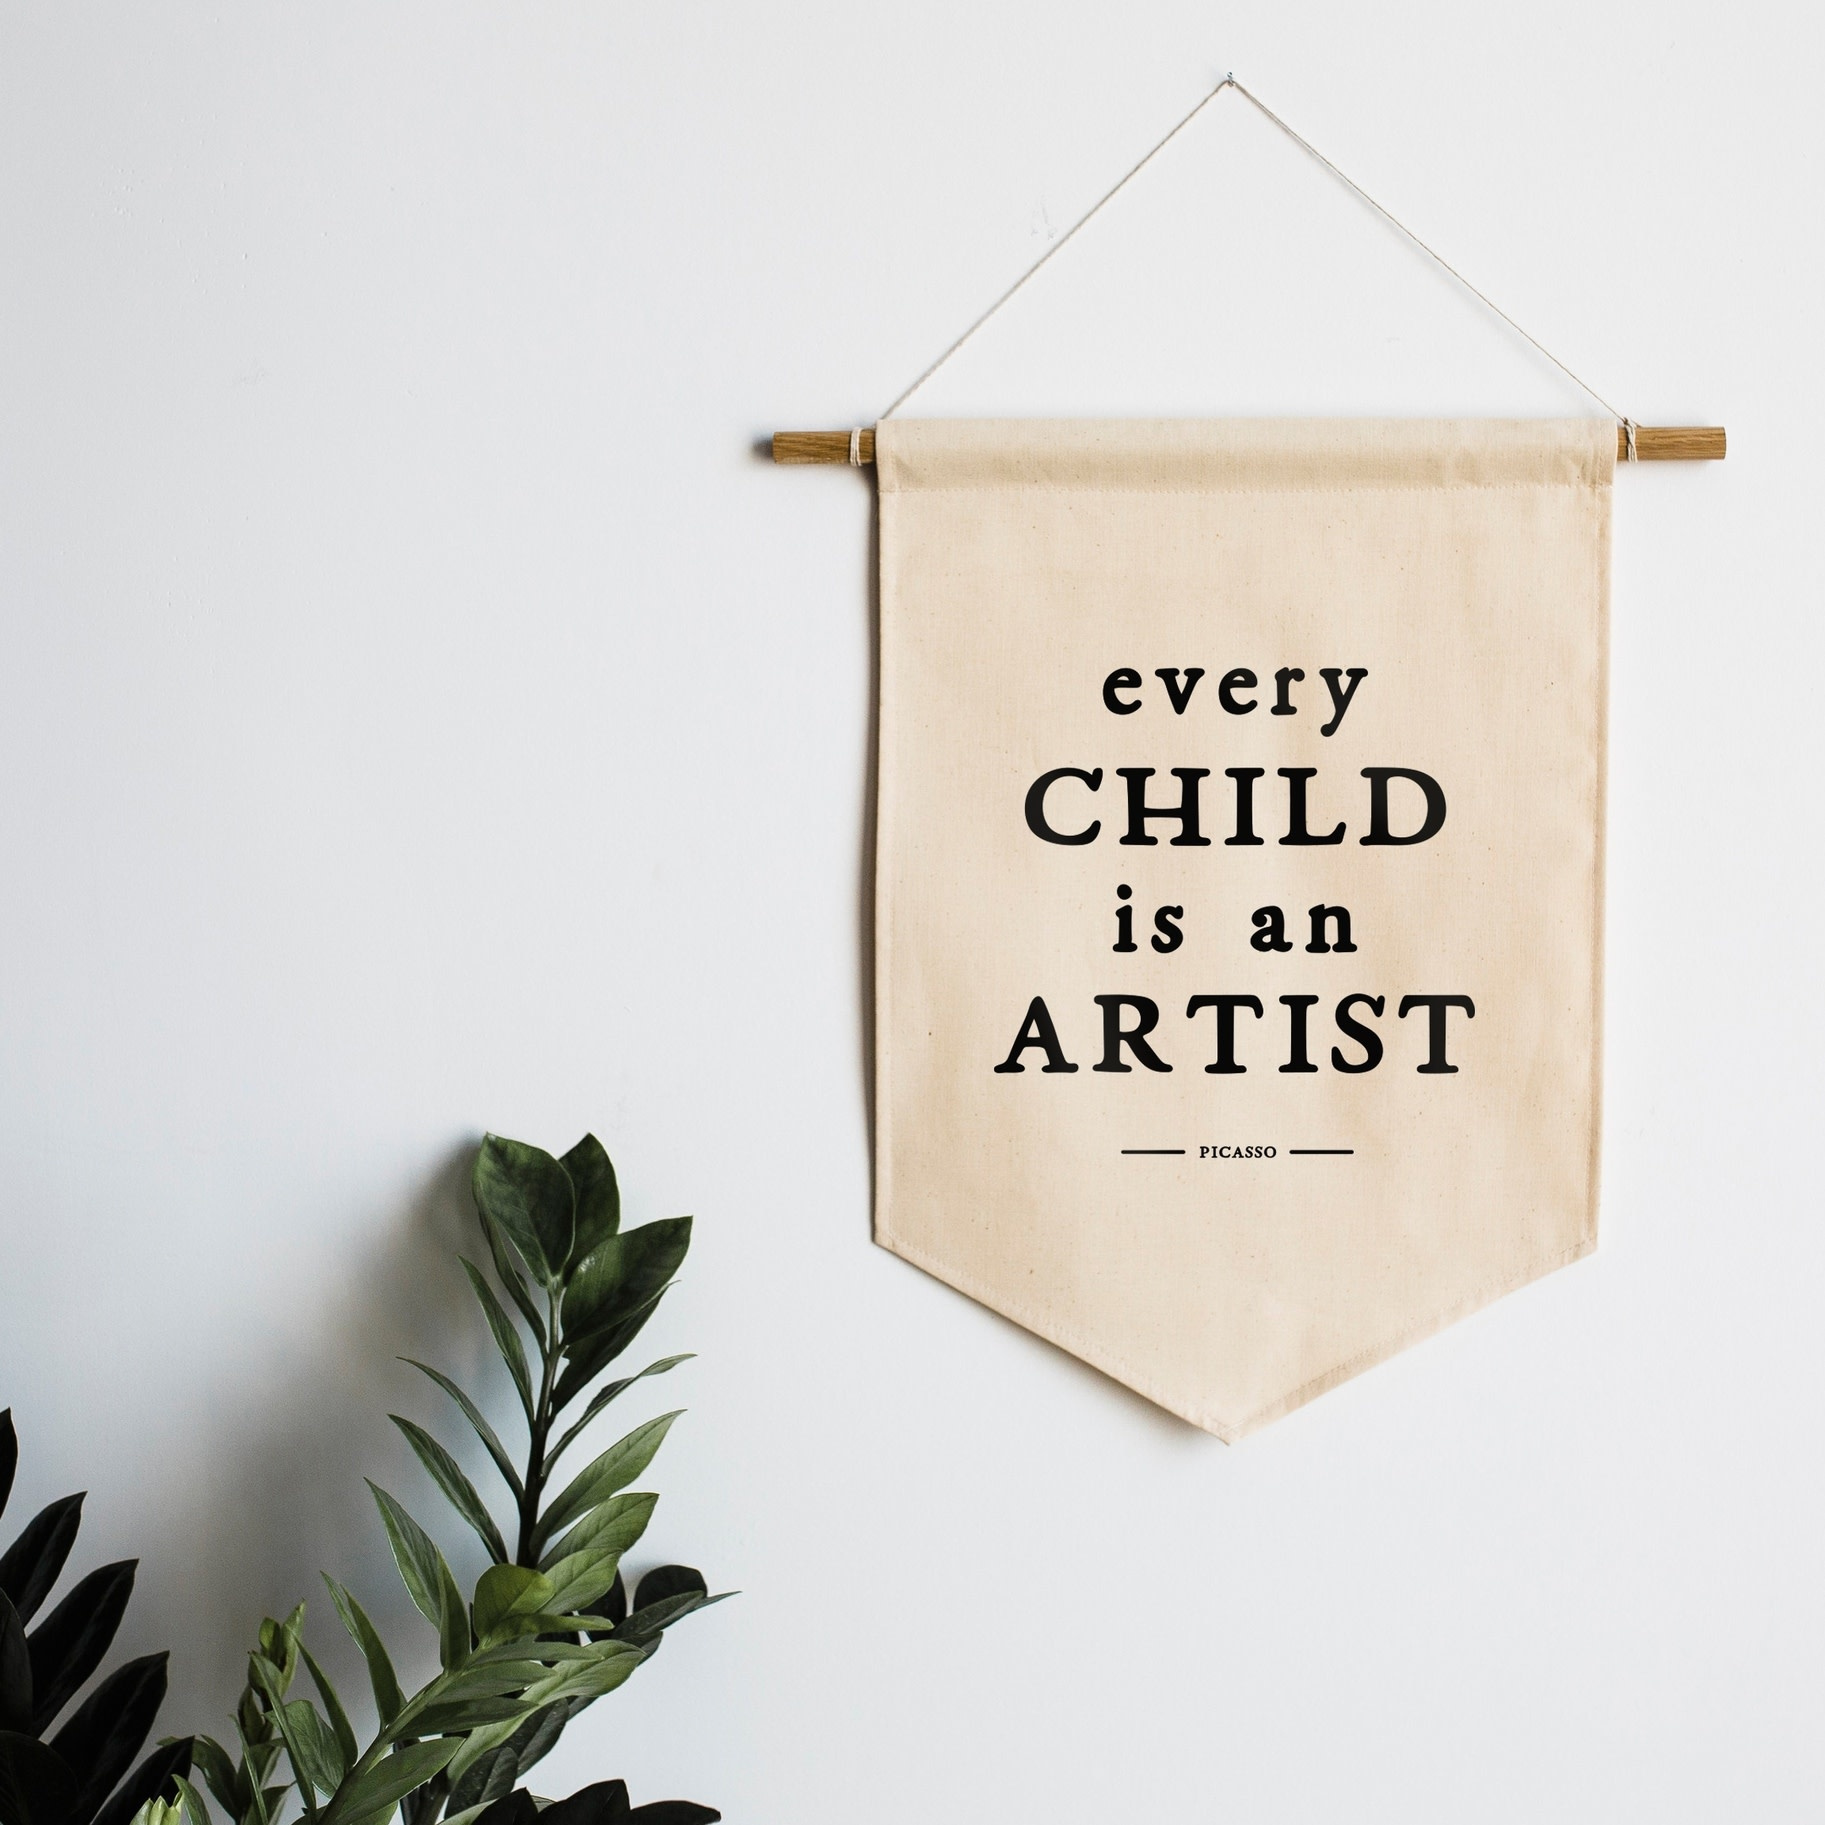 Gladfolk Gladfolk | Every Child is an Artist Banner